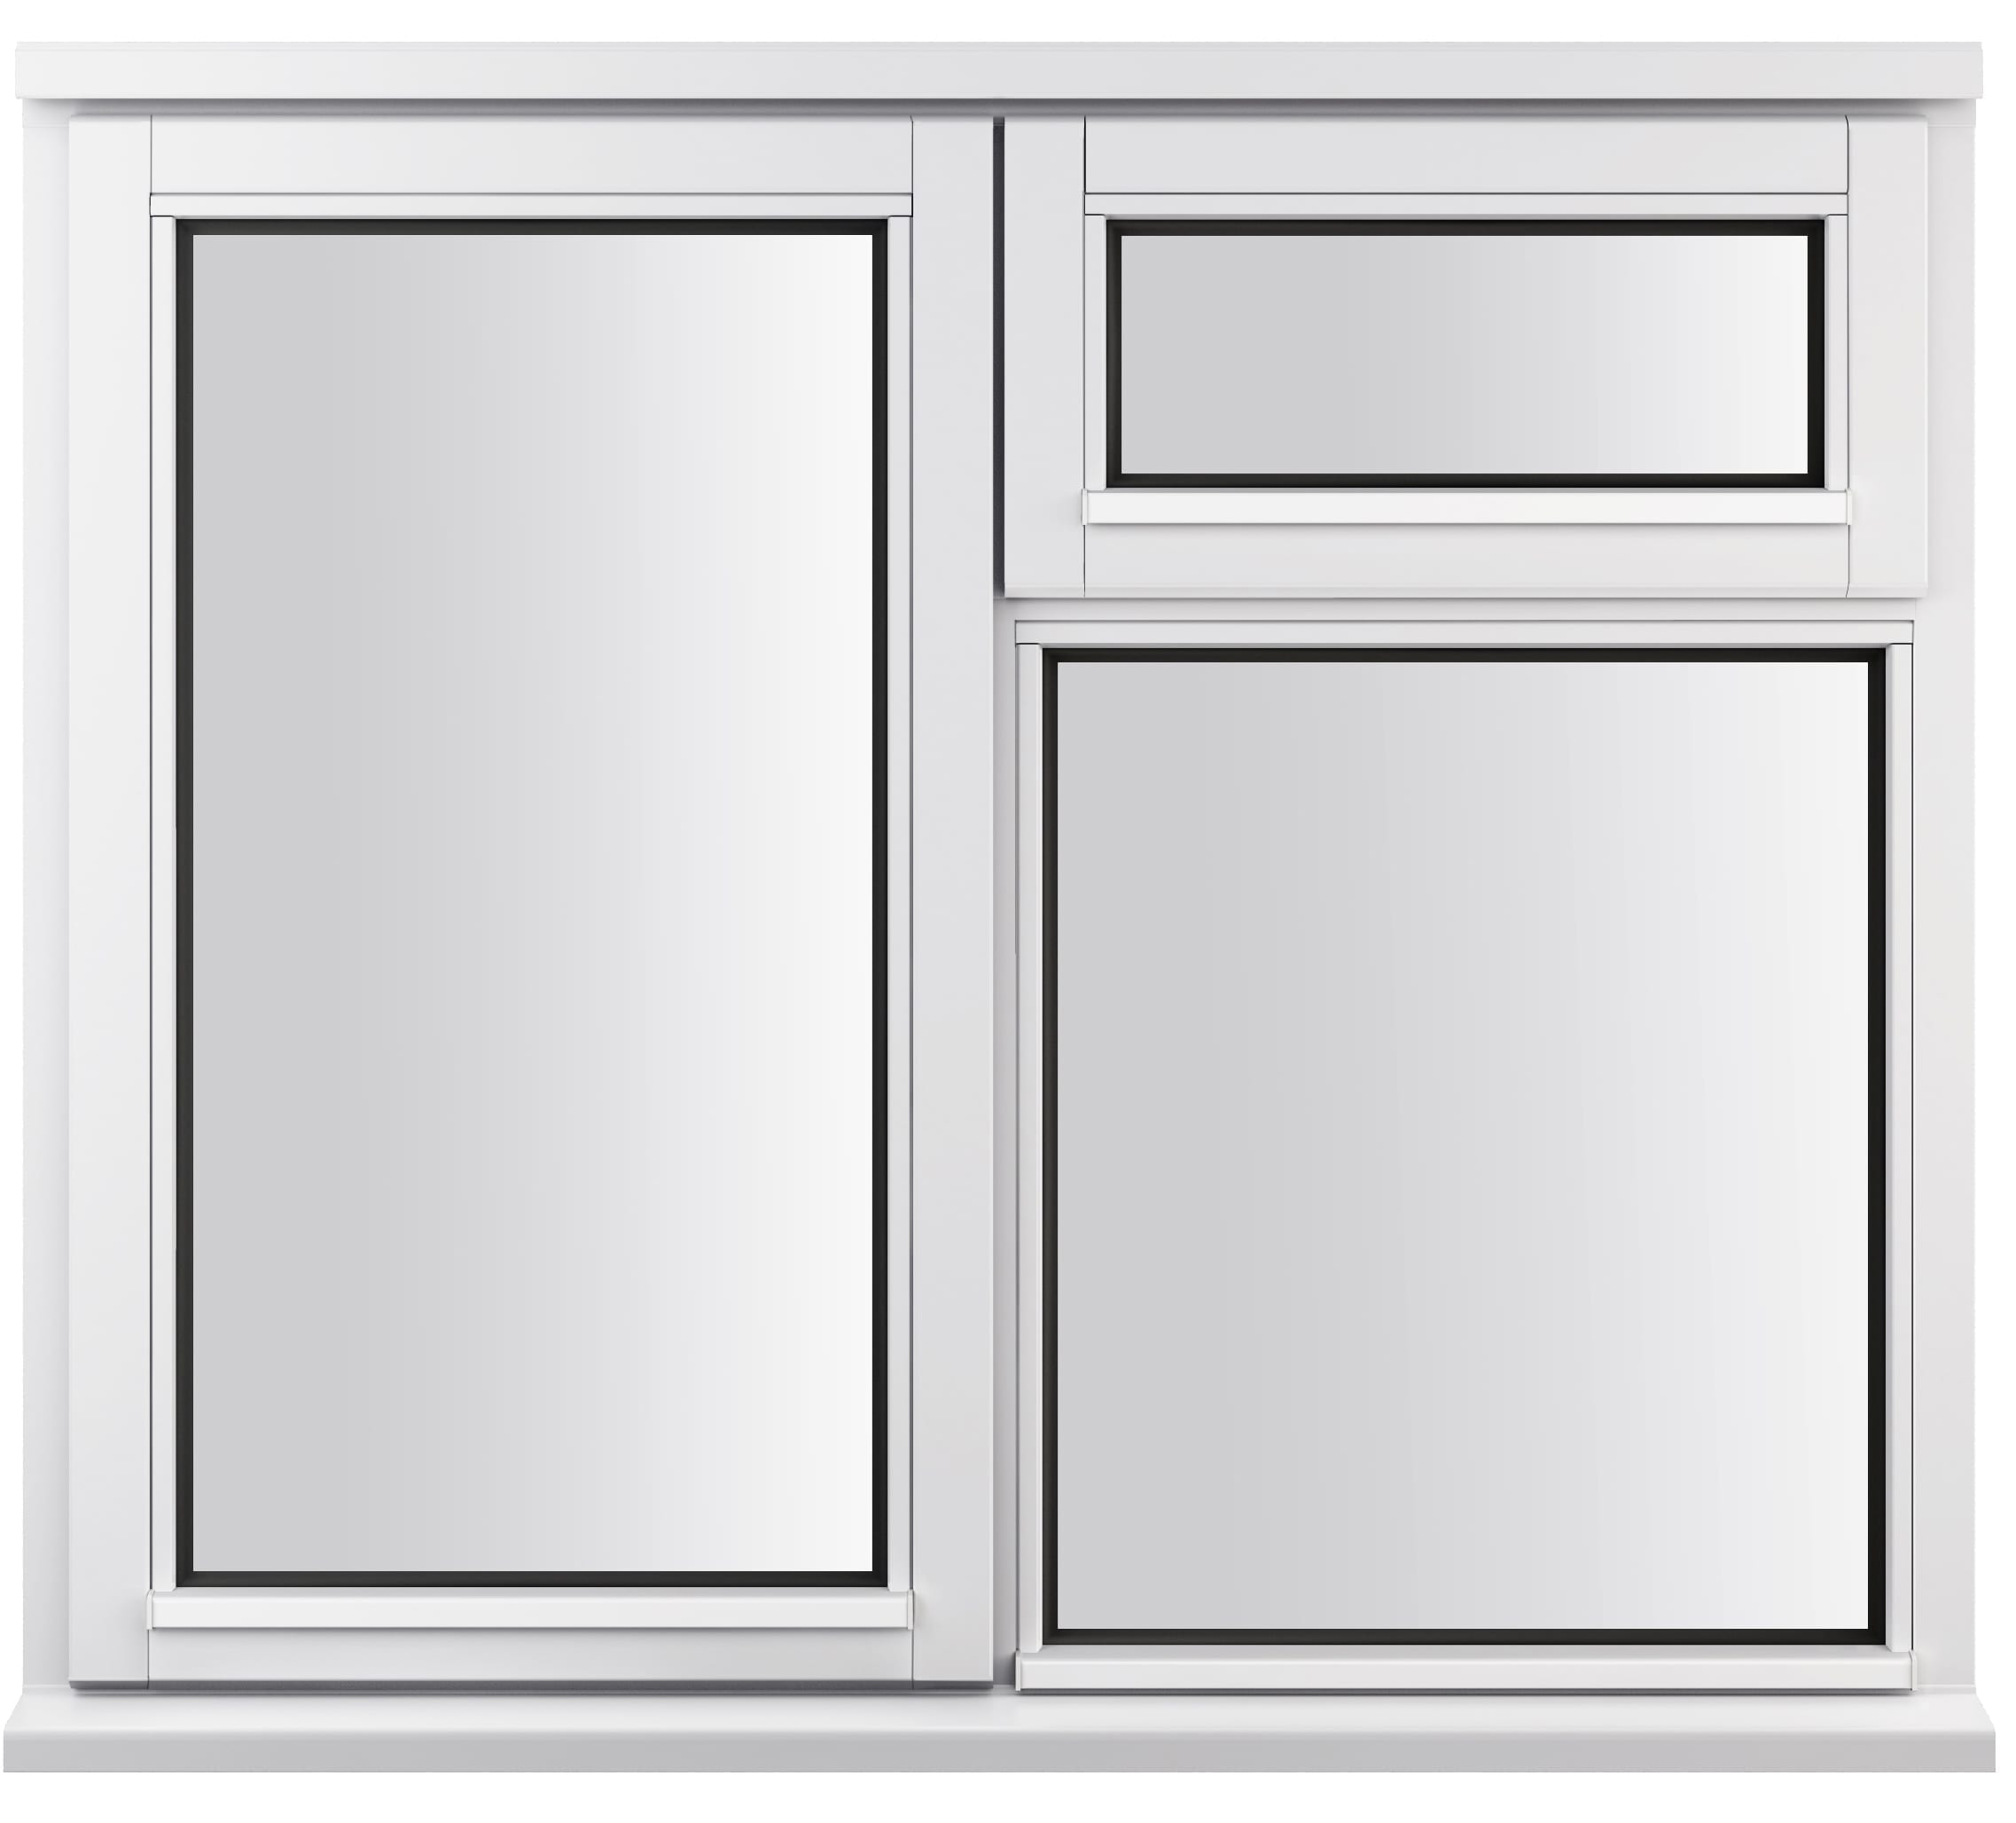 LEW210CV-A Jeldwen casement window with vent